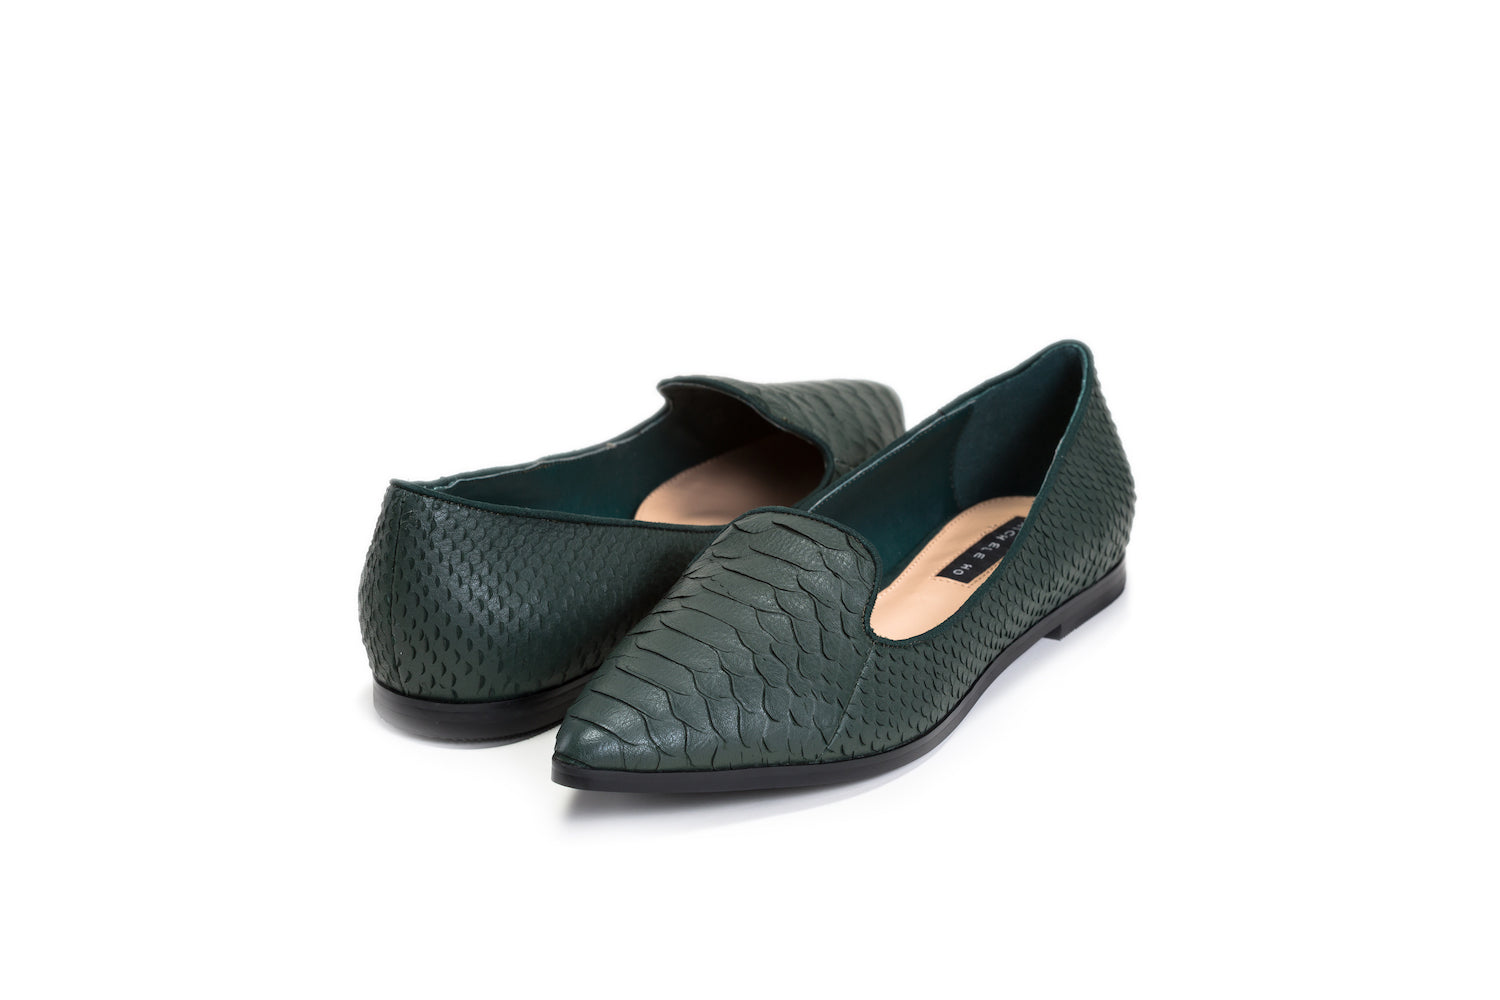 MICHELE HO Green crocodile textured leather flats